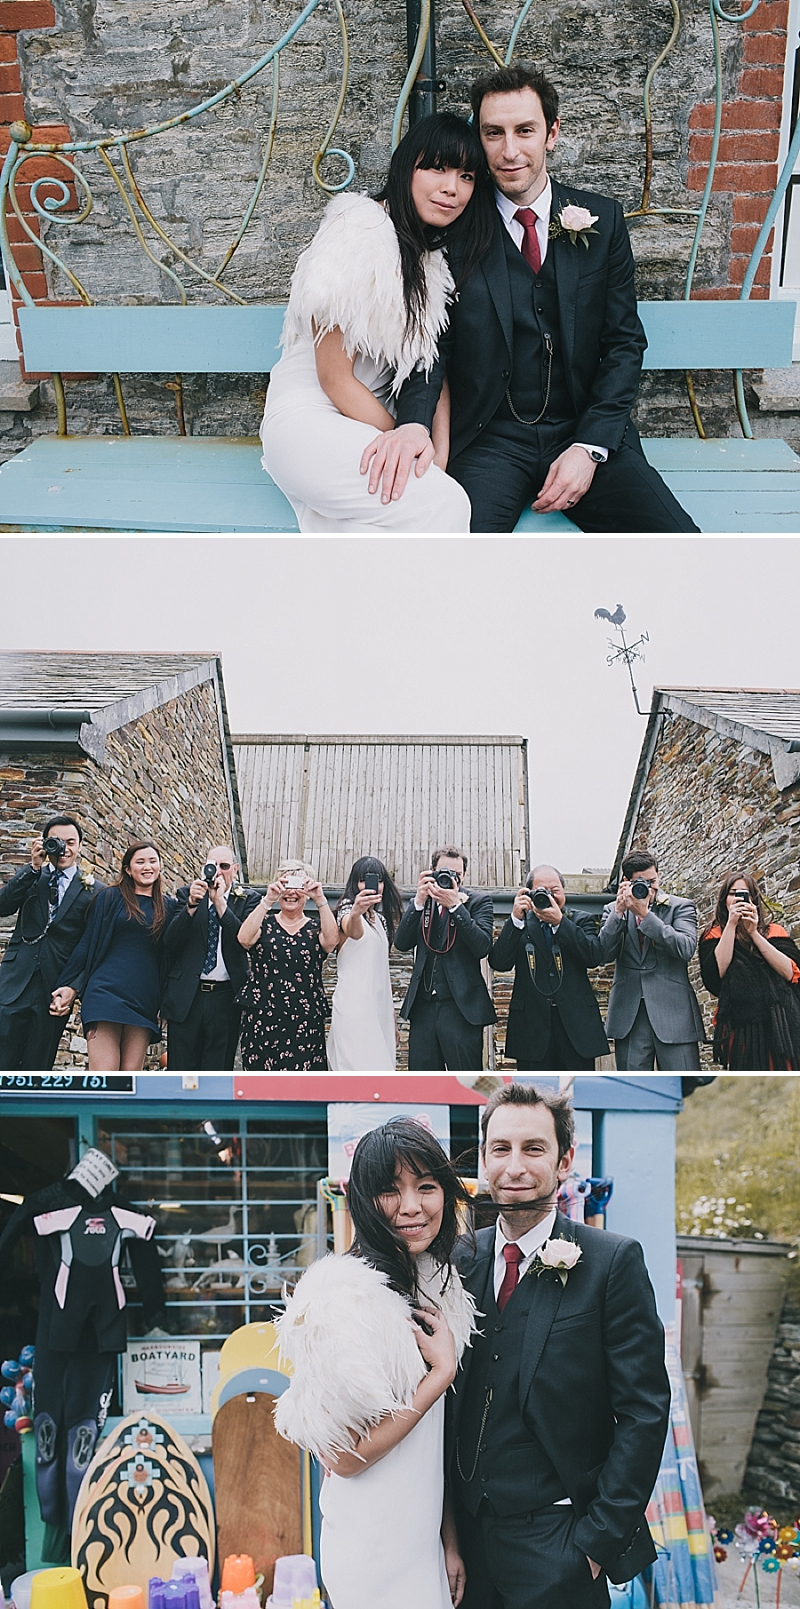 A stylish cornwall sornish wedding with a designer wedding dress by 3.1 Philip Lim 0430 High Tide.